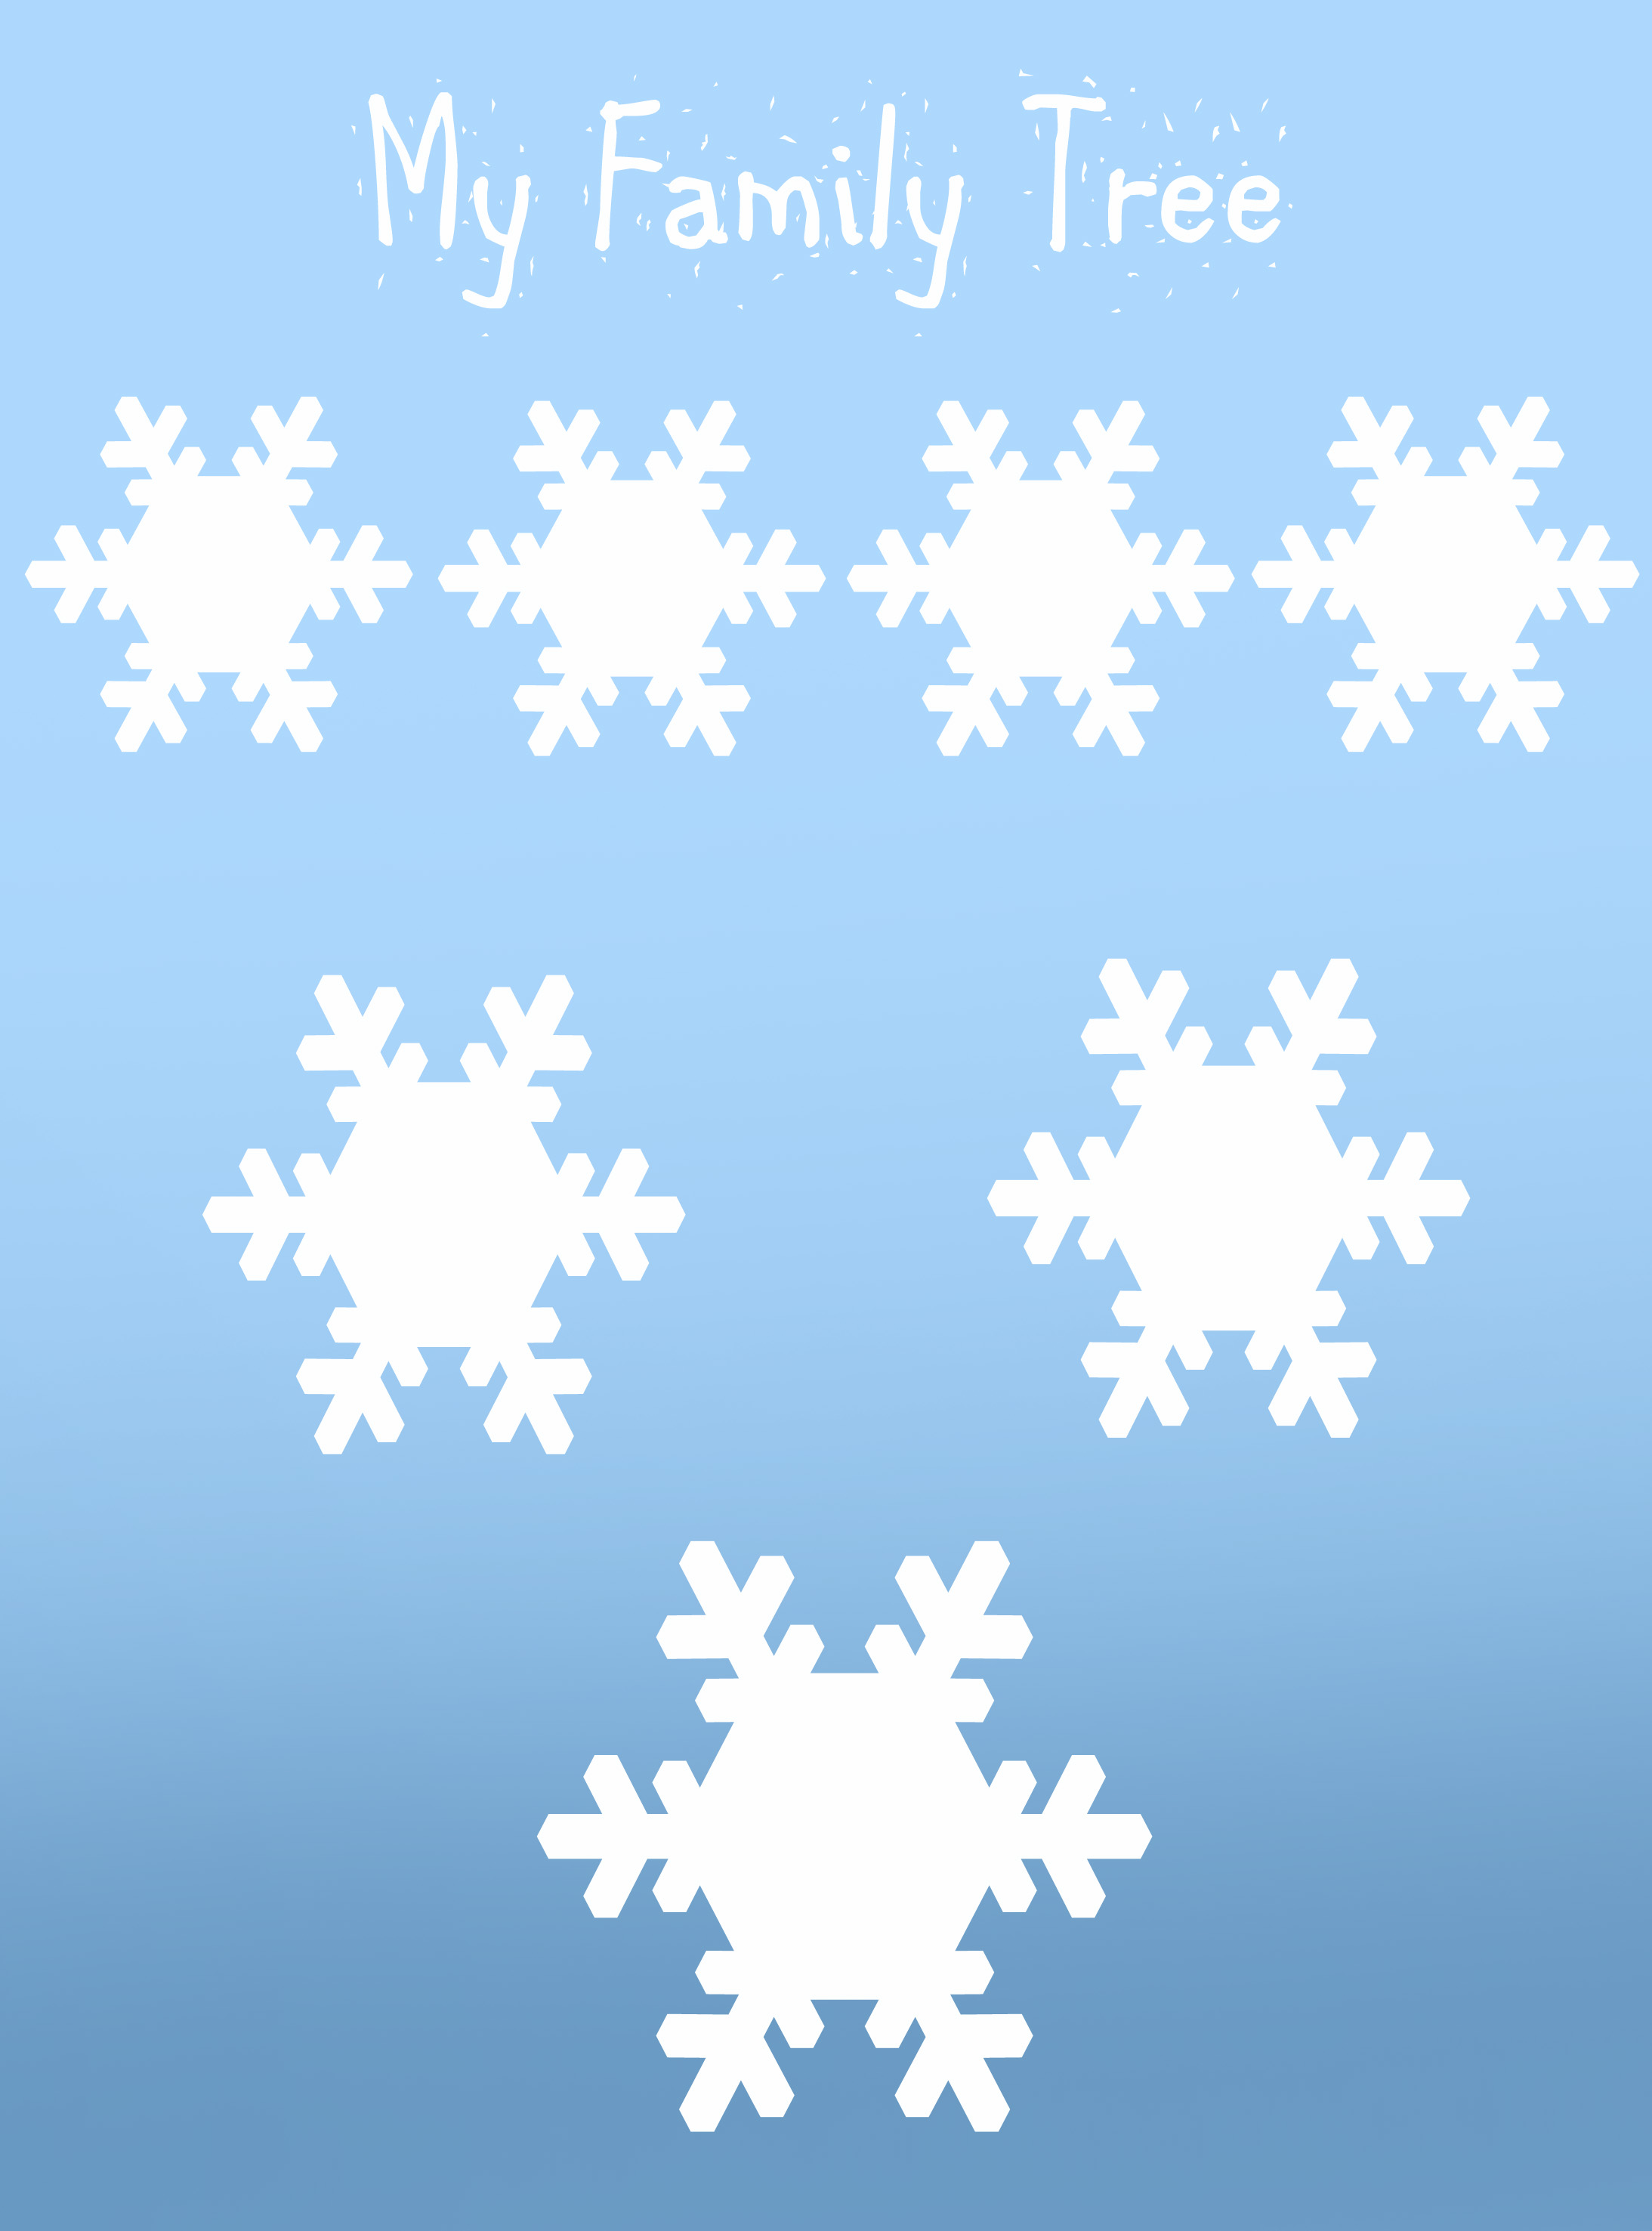 Snowflake ancestry chart for young kids.